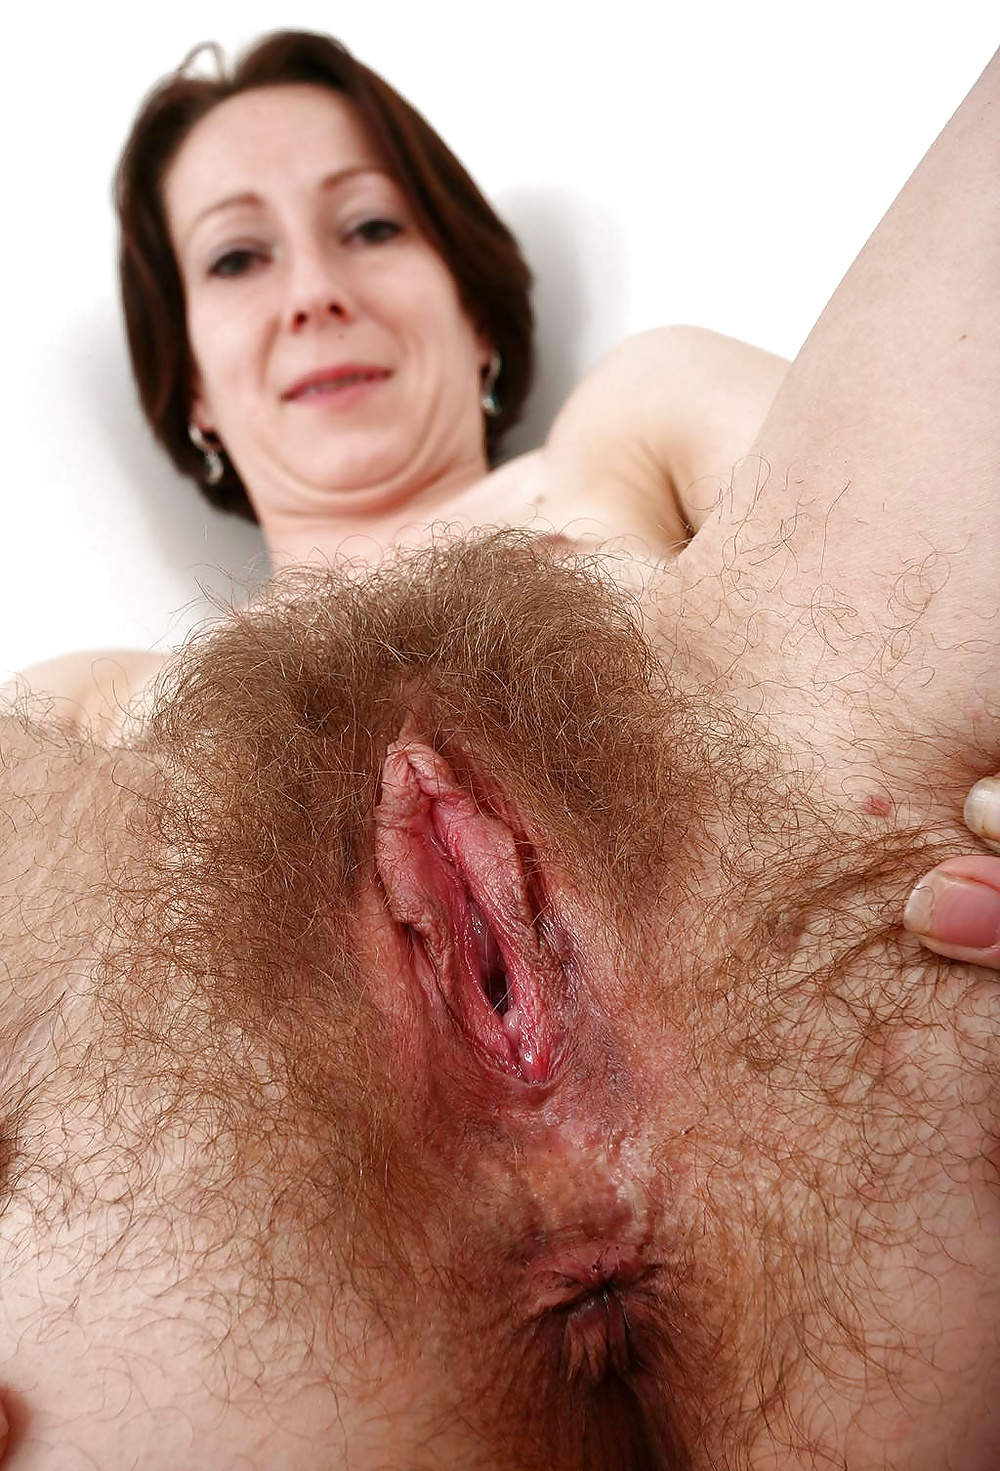 Good mature hairy pussy, unfiltered lesbian porn